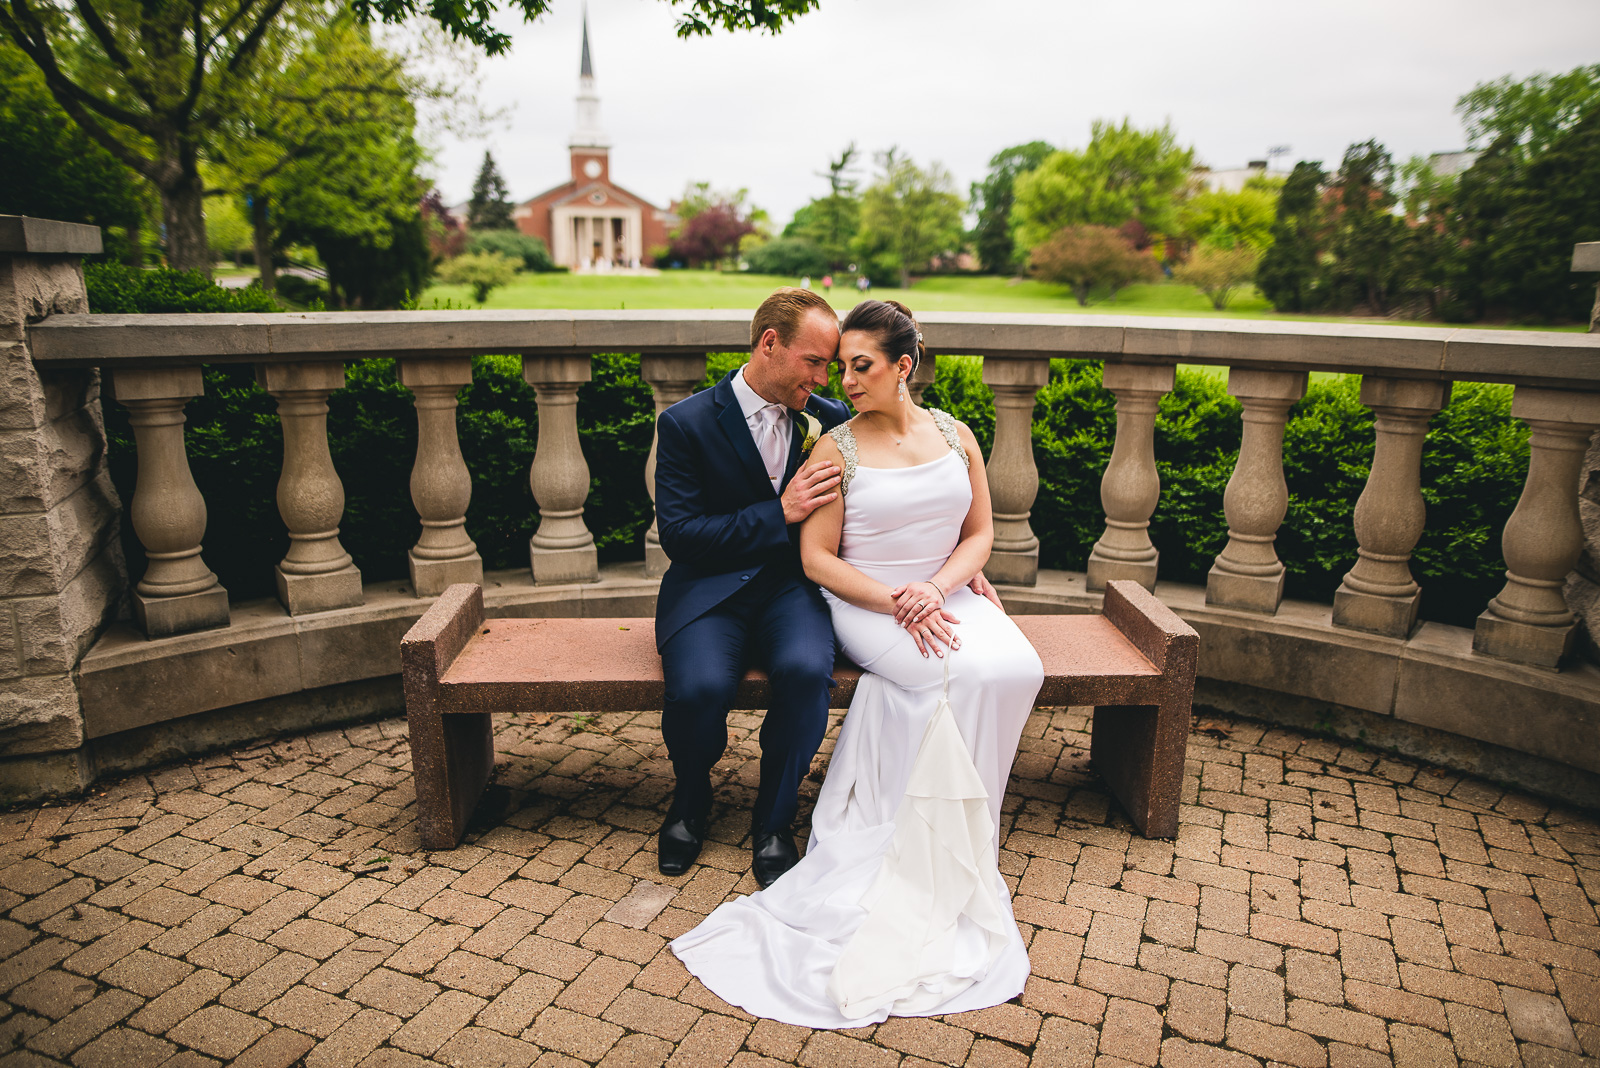 37 chicago wedding photographer best portraits during weddings review 1 - 2018 in Review // My Favorite Chicago Wedding Photography Portraits